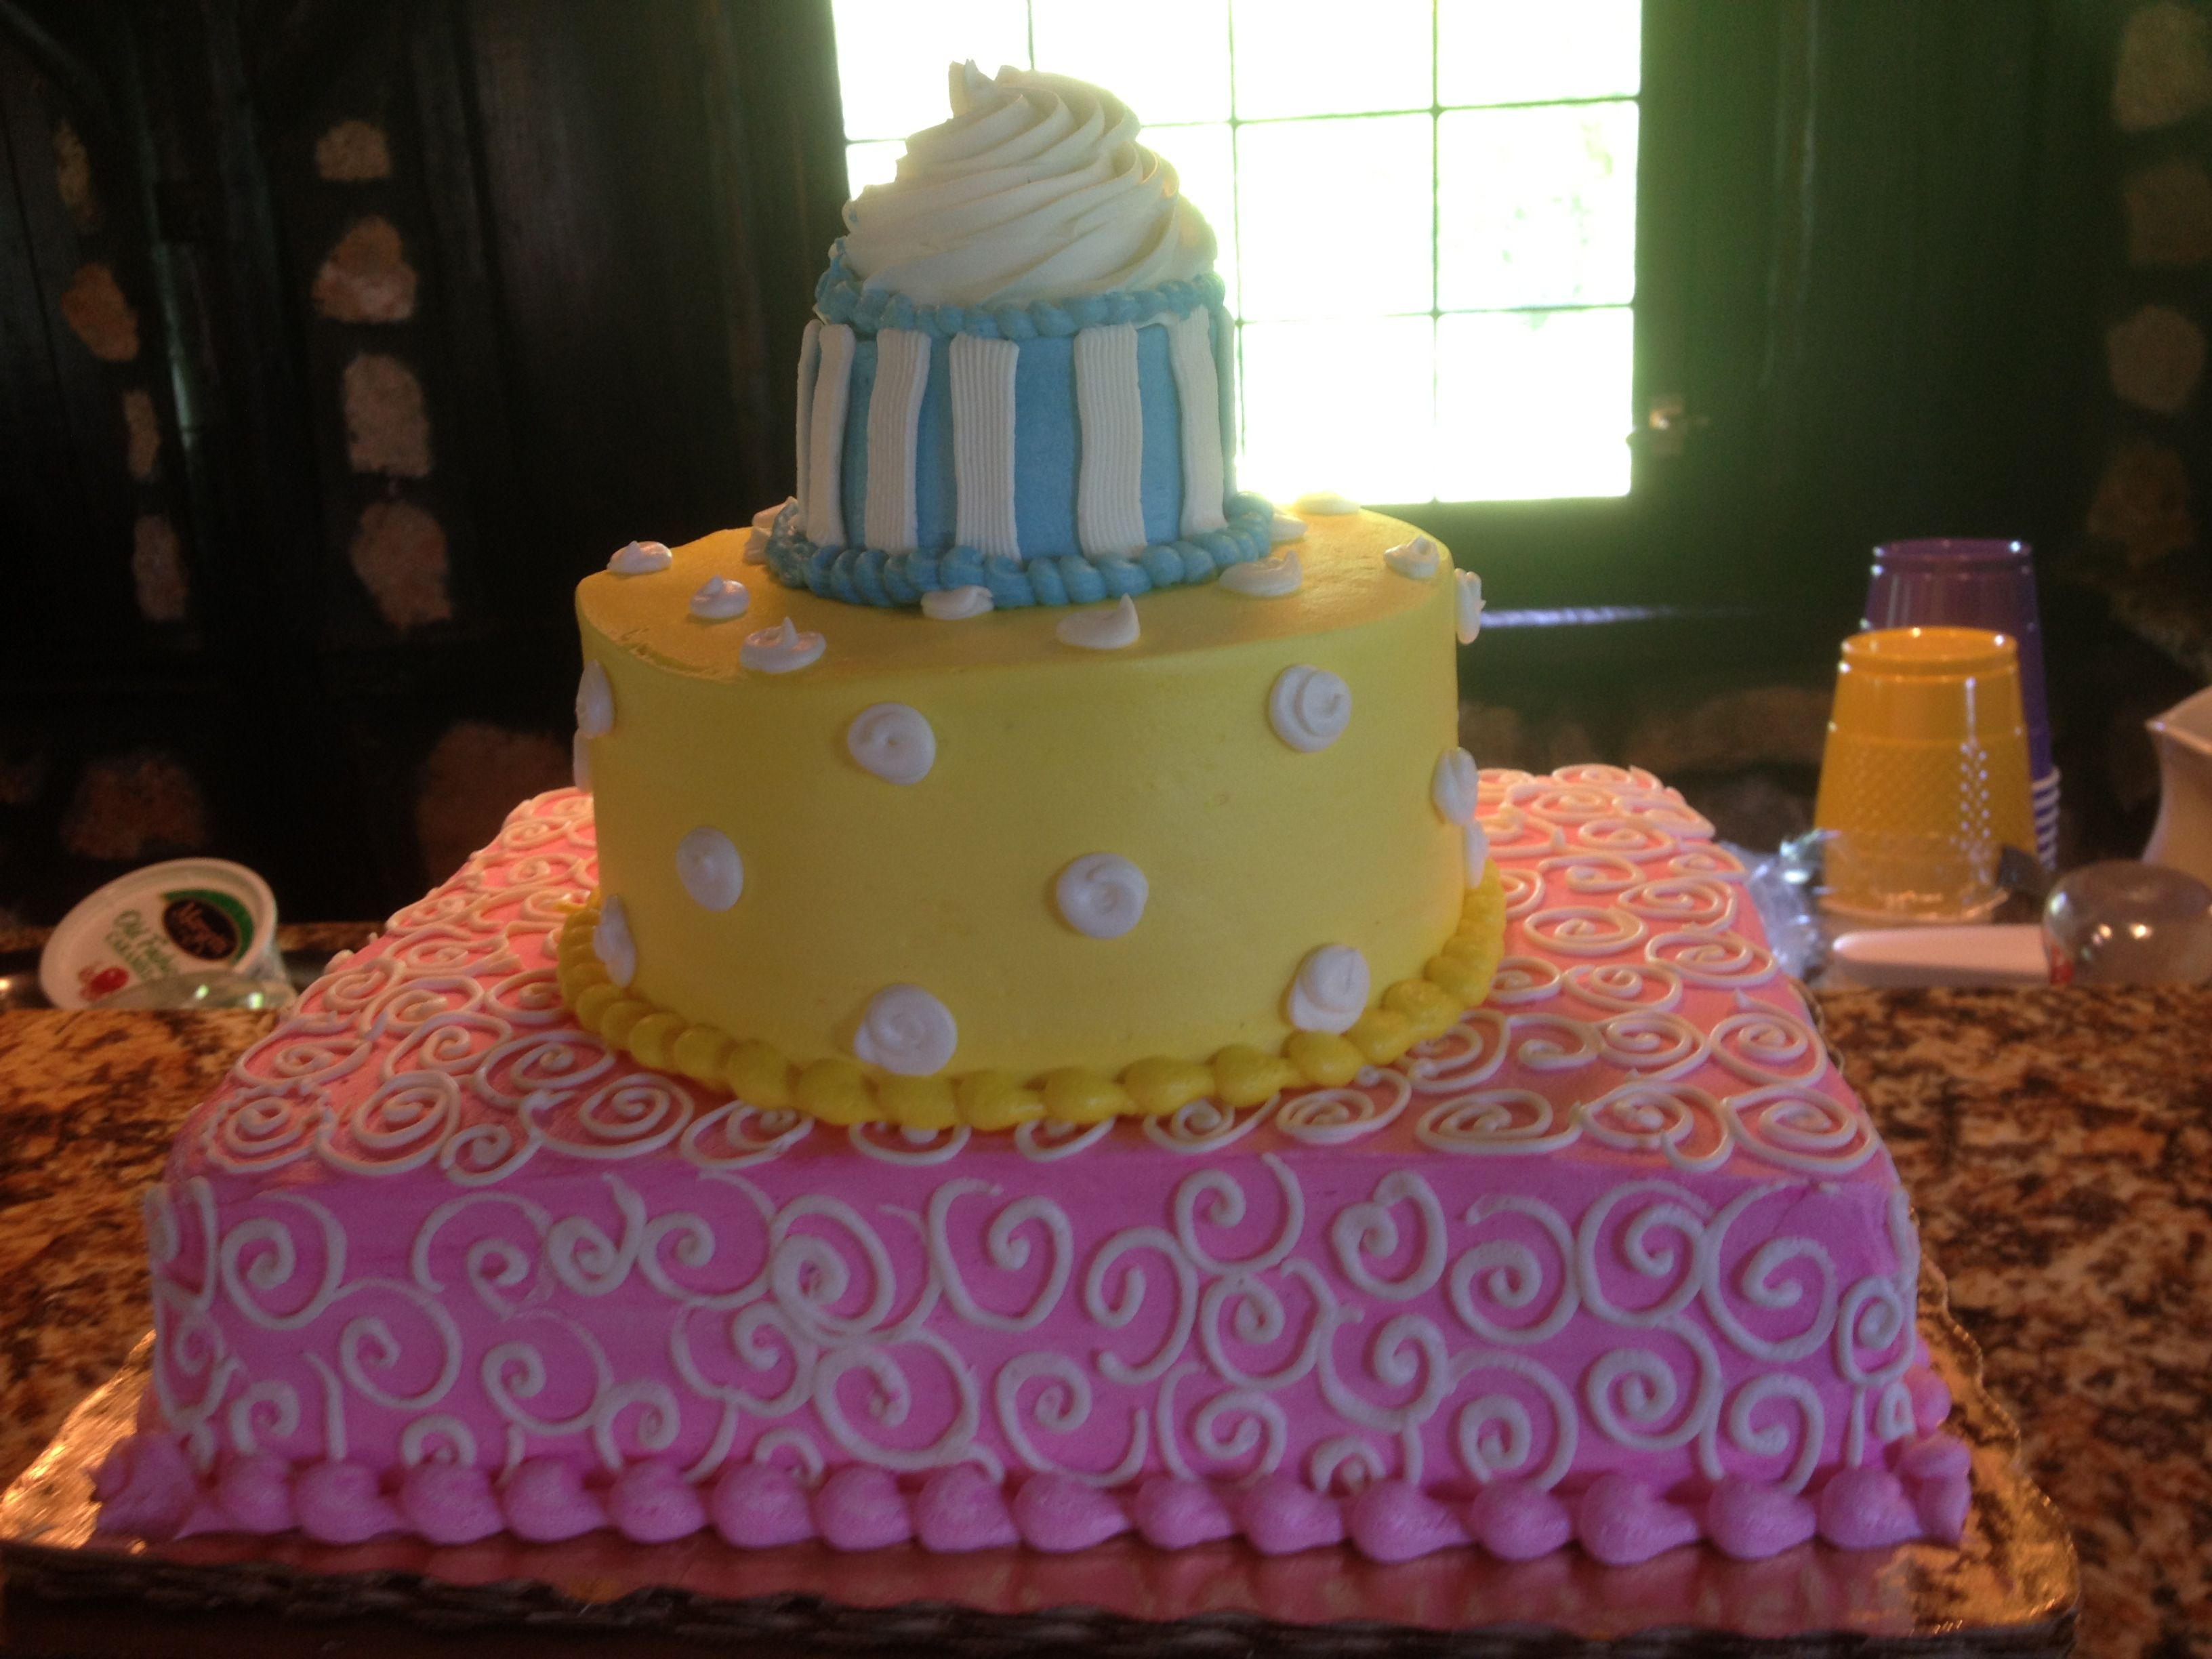 Birthday Cake ! A Publix Wedding Cake Made Smaller :P With A Cupcake On Top